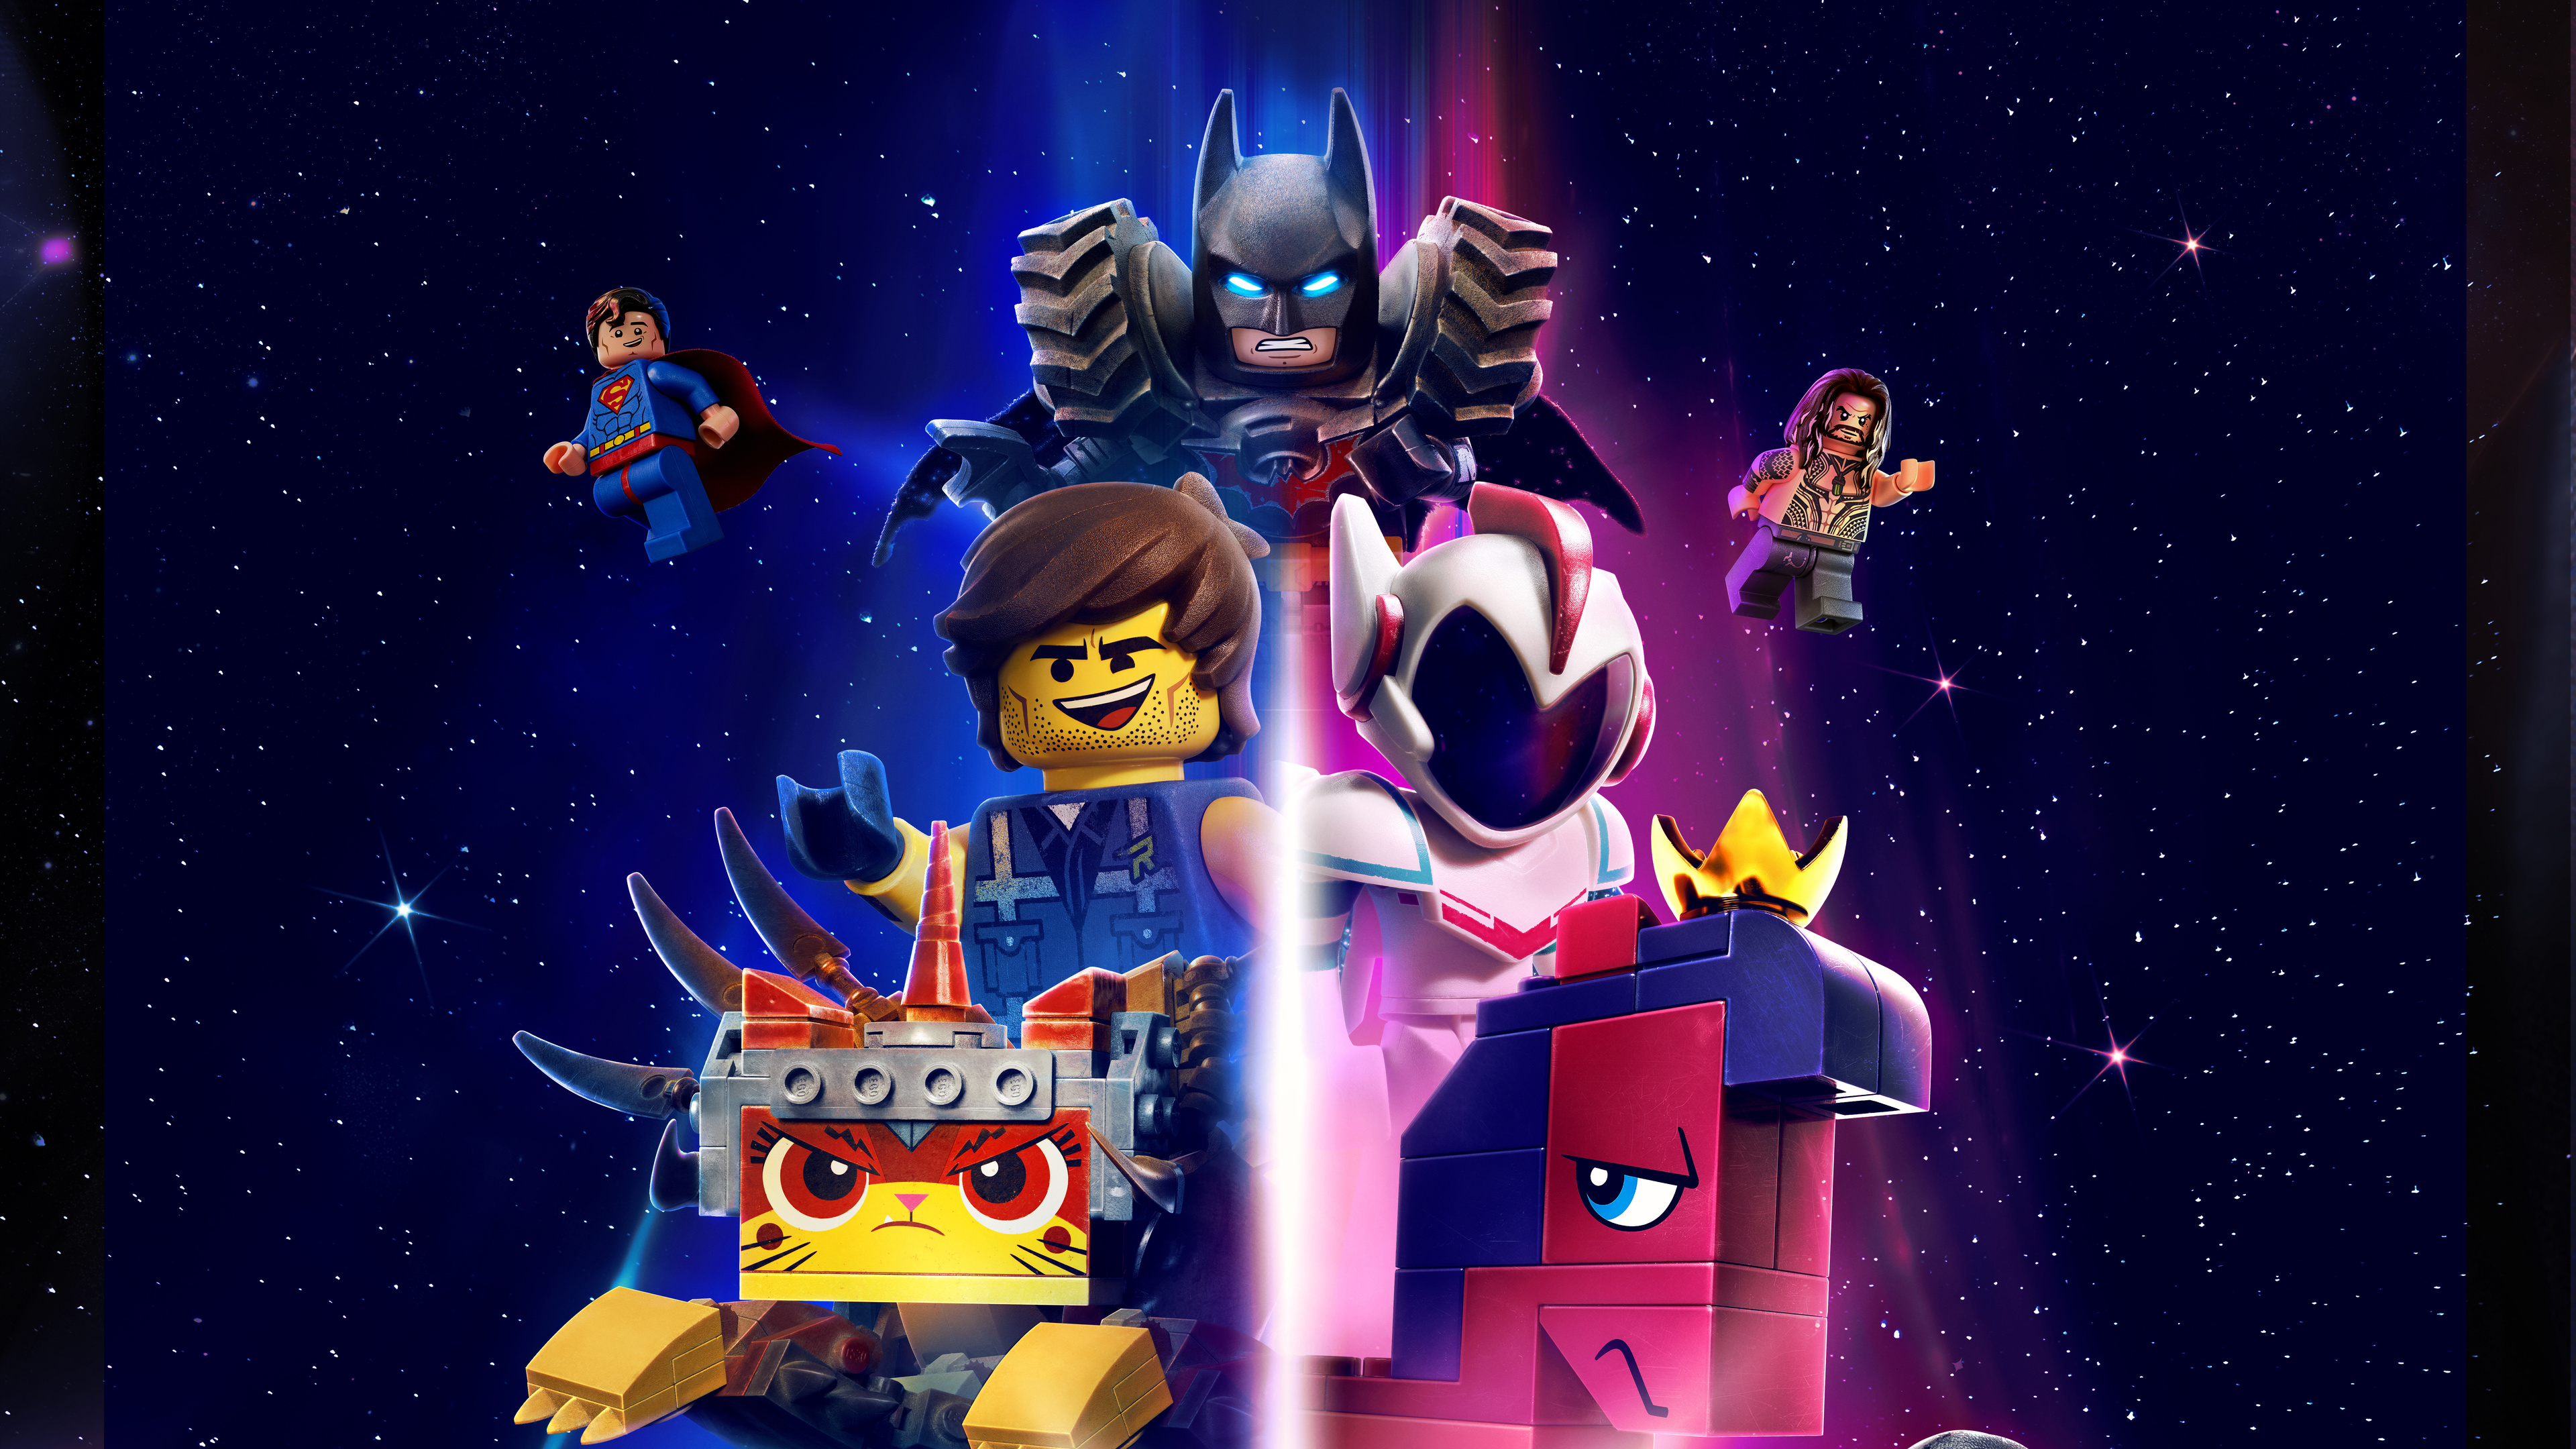 the lego movie 2 the second part 4k 1553074282 - The Lego Movie 2 The Second Part 4k - the lego movie 2 wallpapers, the lego movie 2 the second part wallpapers, movies wallpapers, lego wallpapers, hd-wallpapers, animated movies wallpapers, 8k wallpapers, 5k wallpapers, 4k-wallpapers, 2019 movies wallpapers, 10k wallpapers